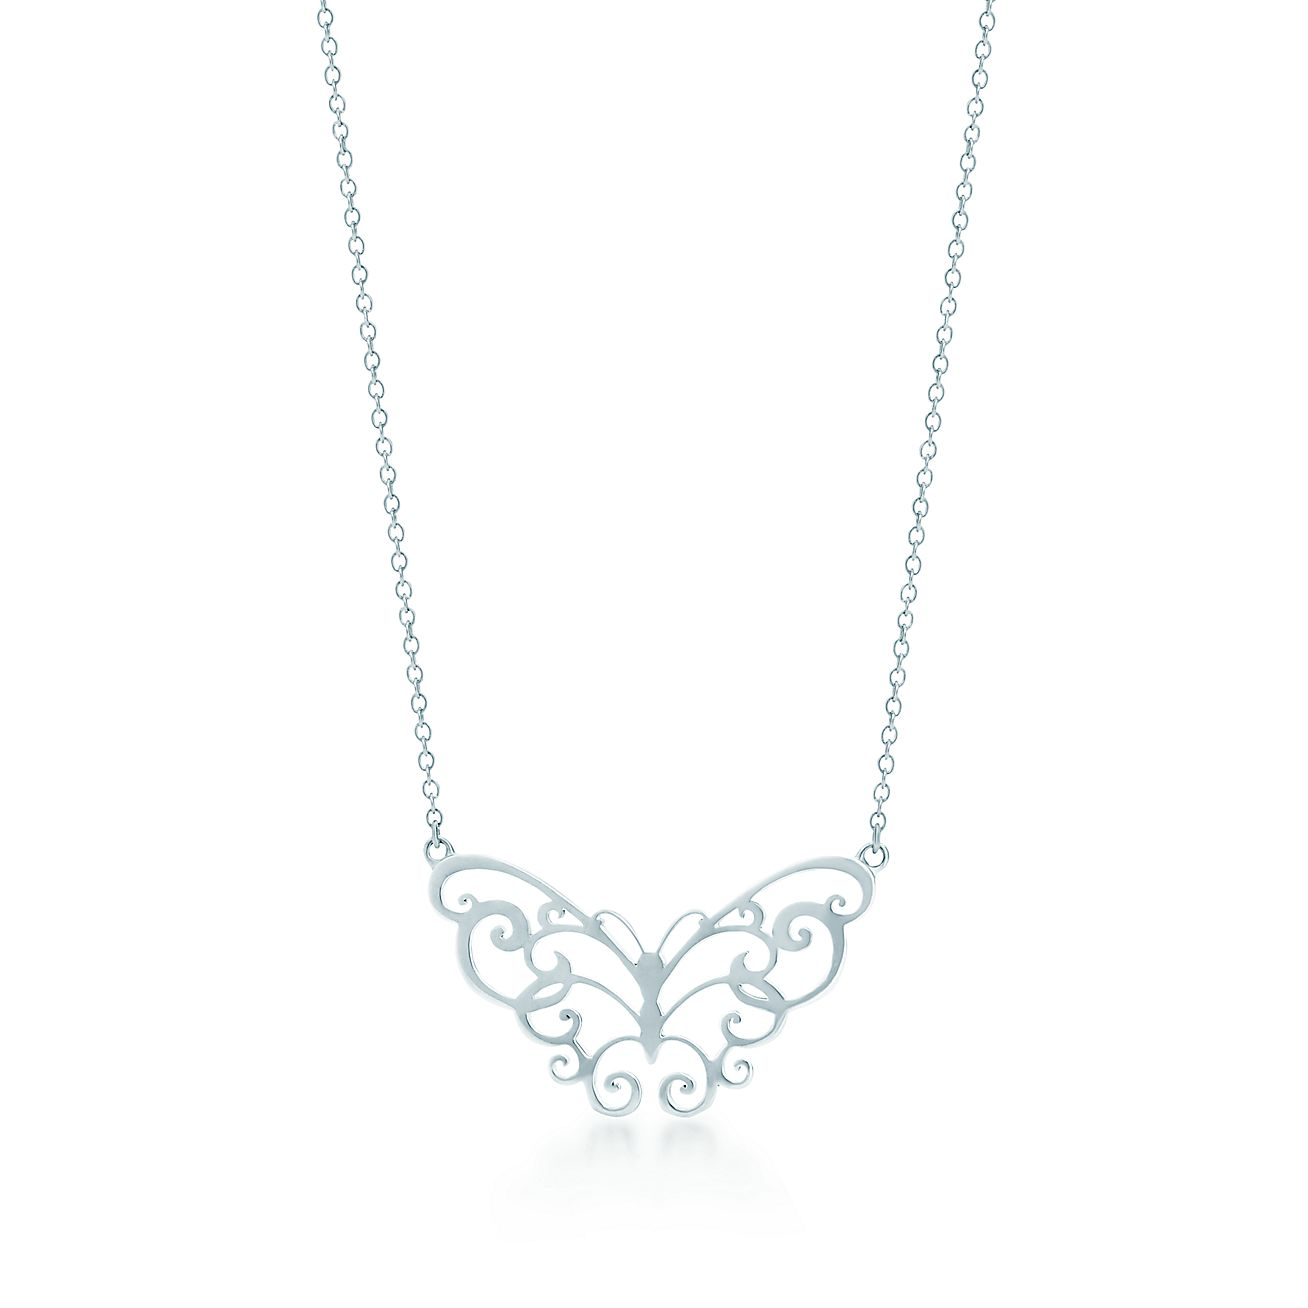 Tiffany enchant butterfly pendant in sterling silver tiffany co audiocablefo light Images